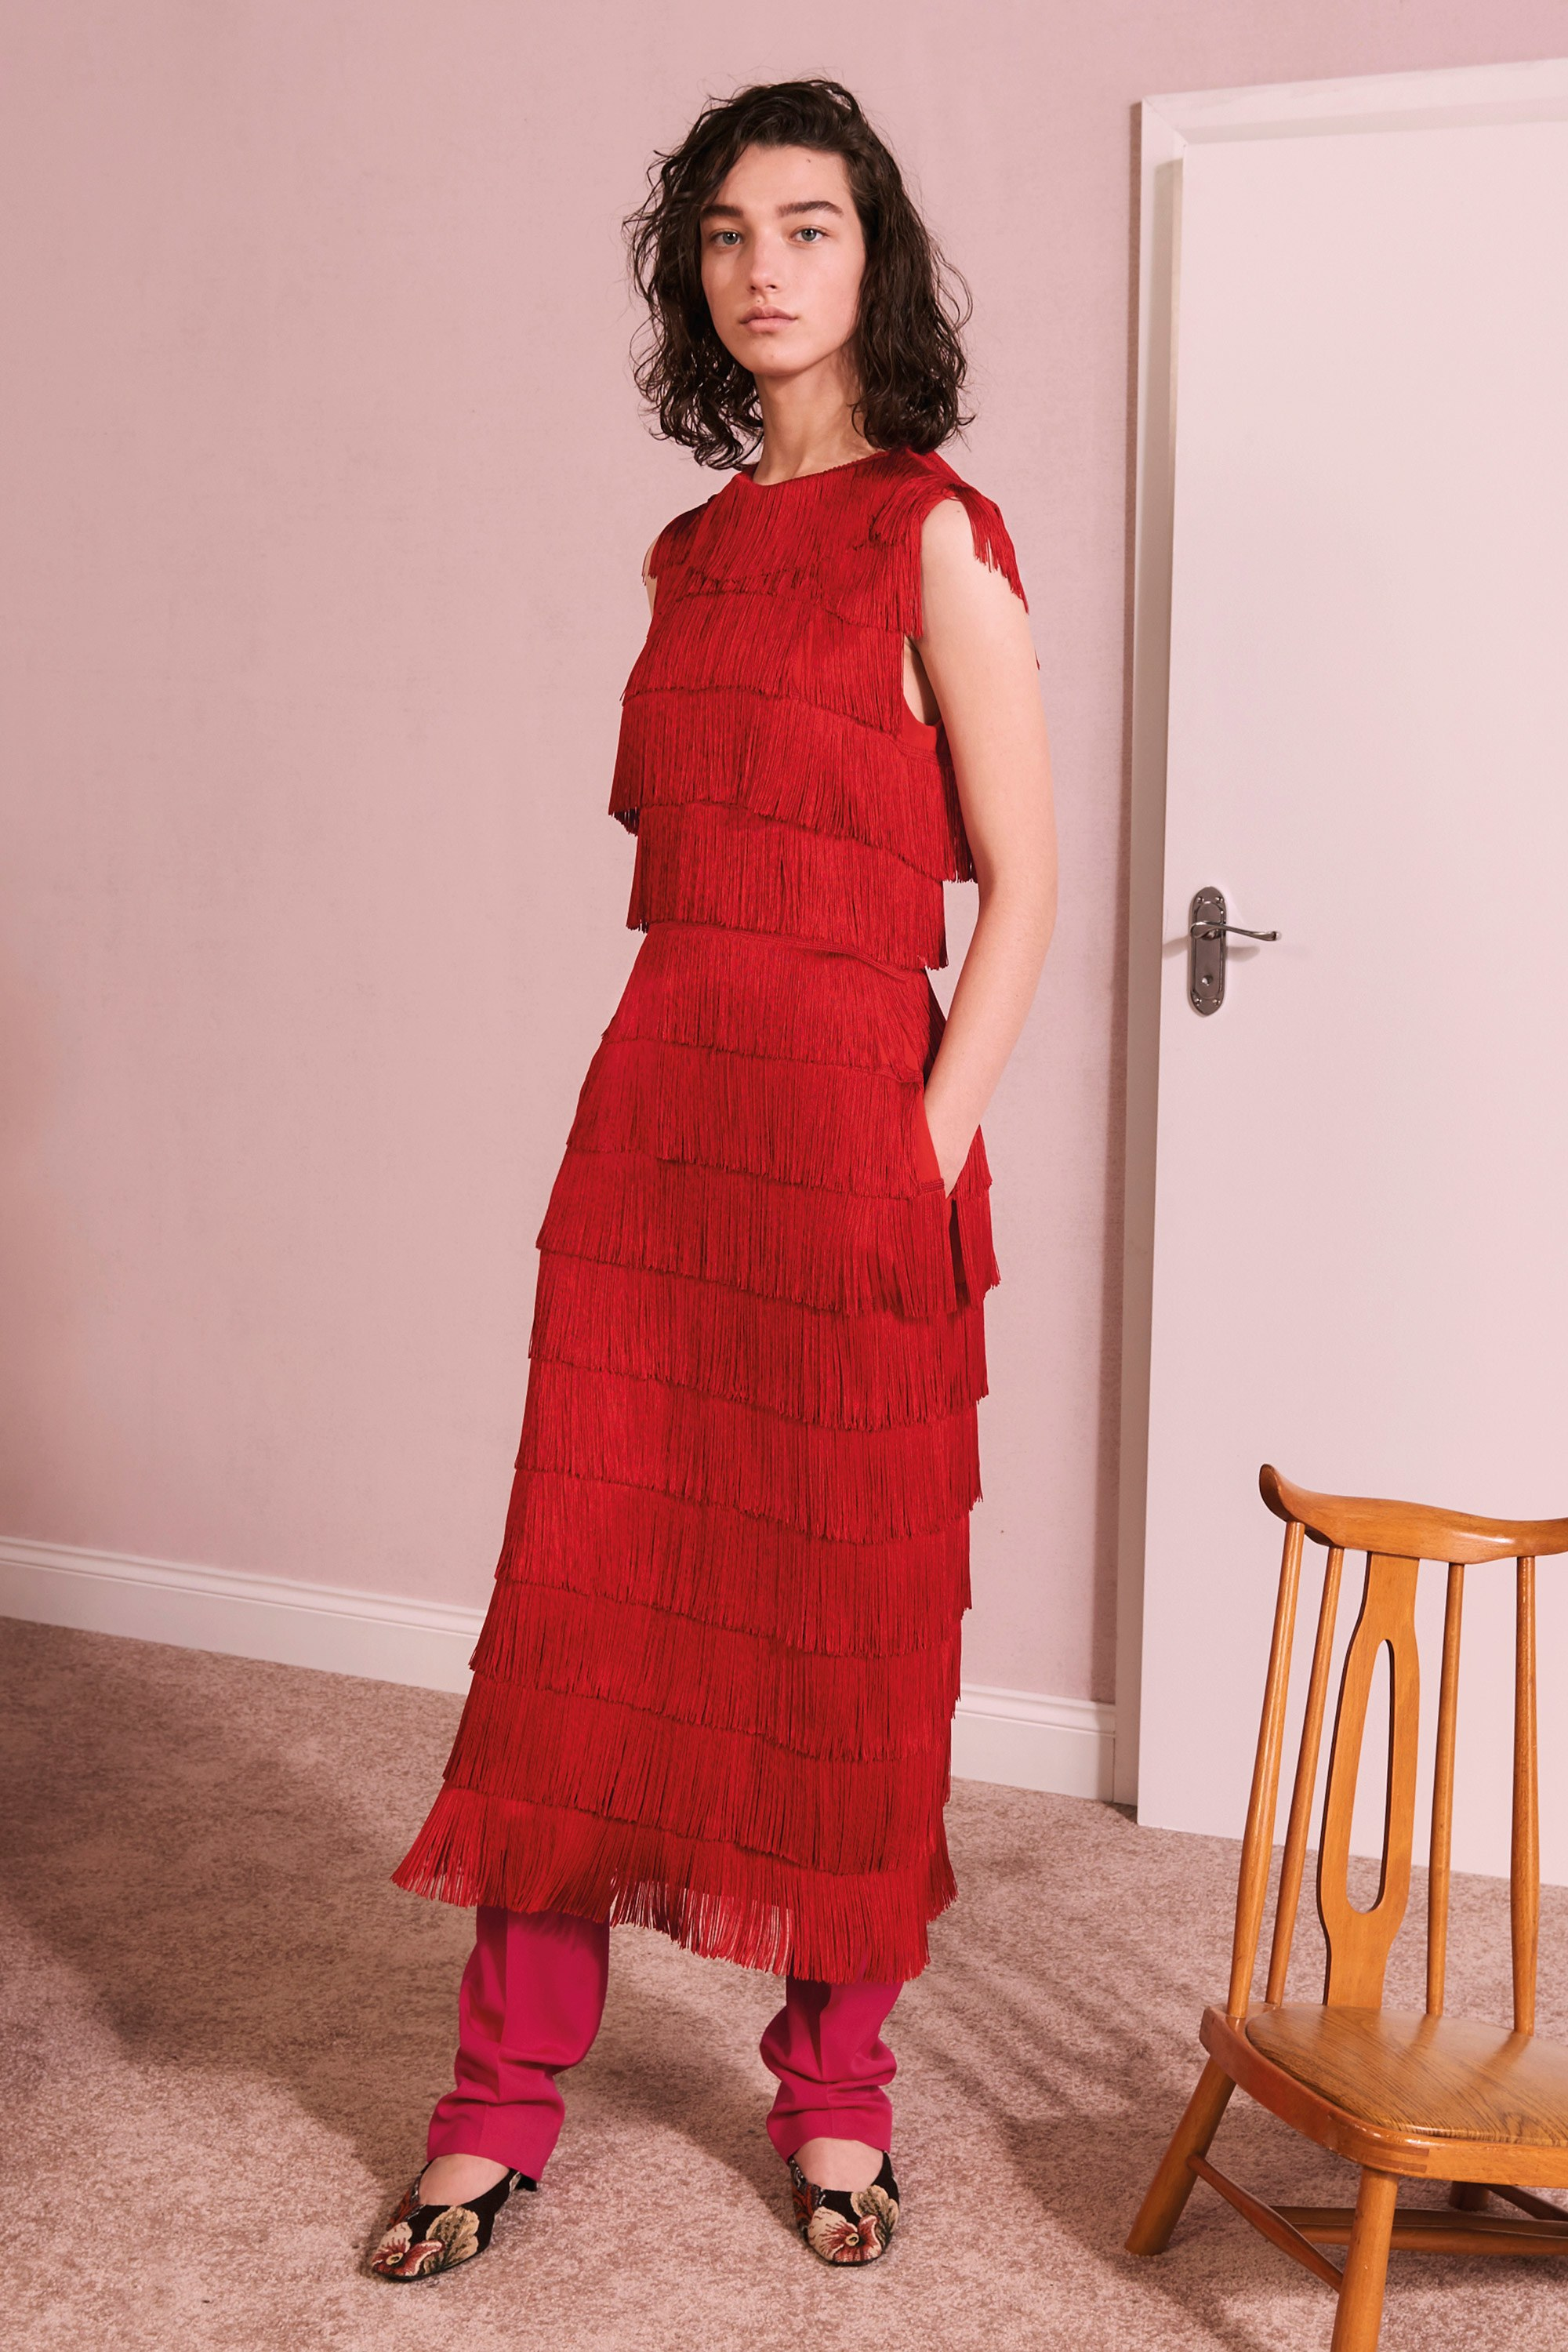 35-stella-mccartney-pre-fall-2017.jpg